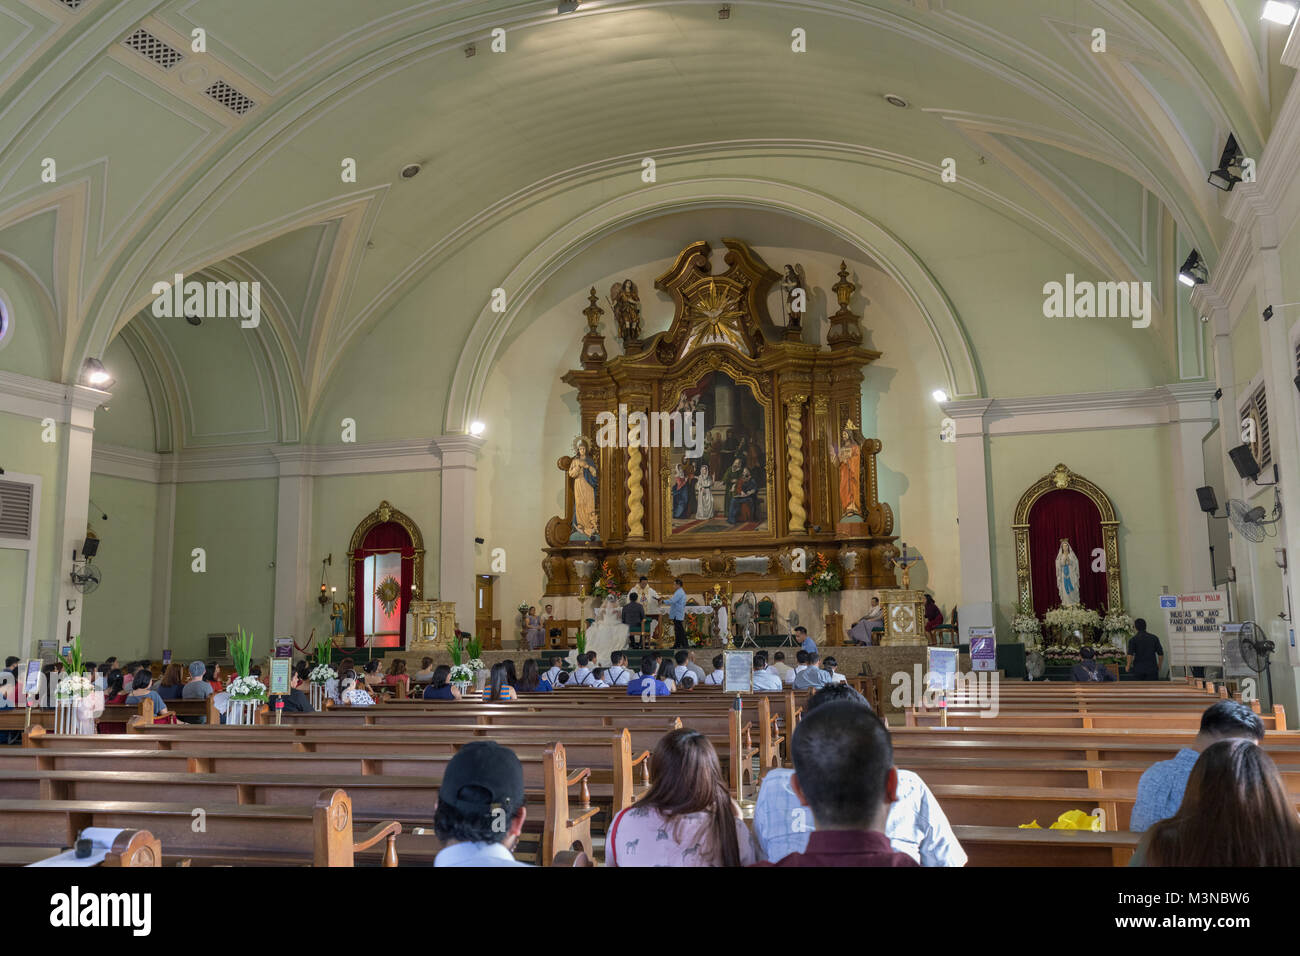 Manila, Philippines - Feb 10, 2018 : Interior view of Catholic churches beside in the Mall of Asia shopping mall - Stock Image